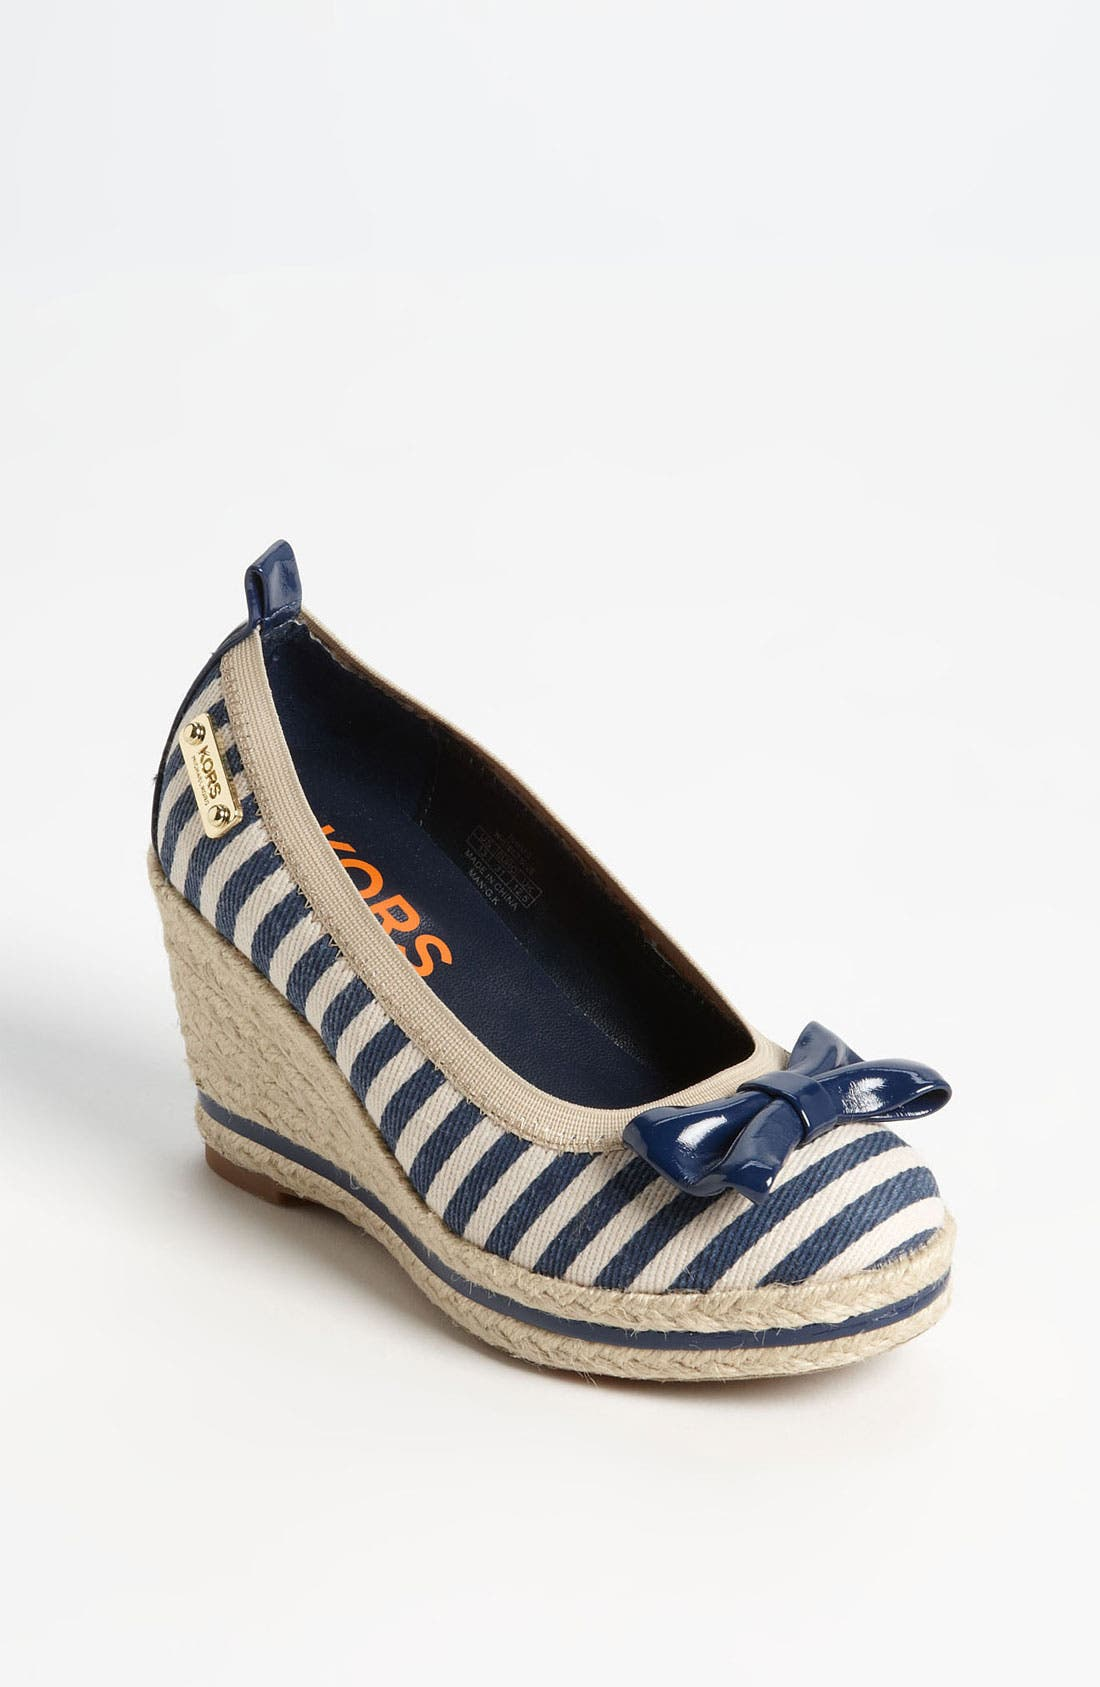 Main Image - KORS Michael Kors 'Tomato' Espadrille Slip-On (Little Kid & Big Kid)